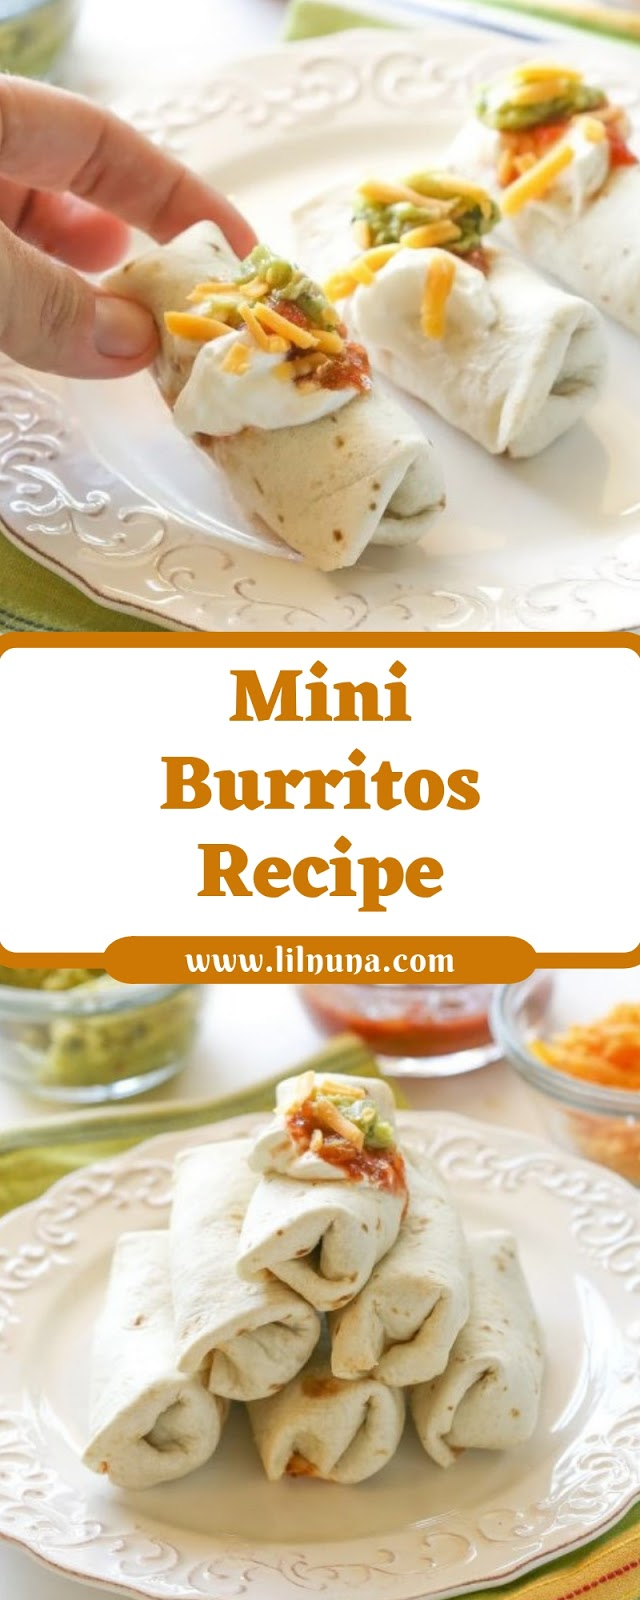 Mini Burritos Recipe